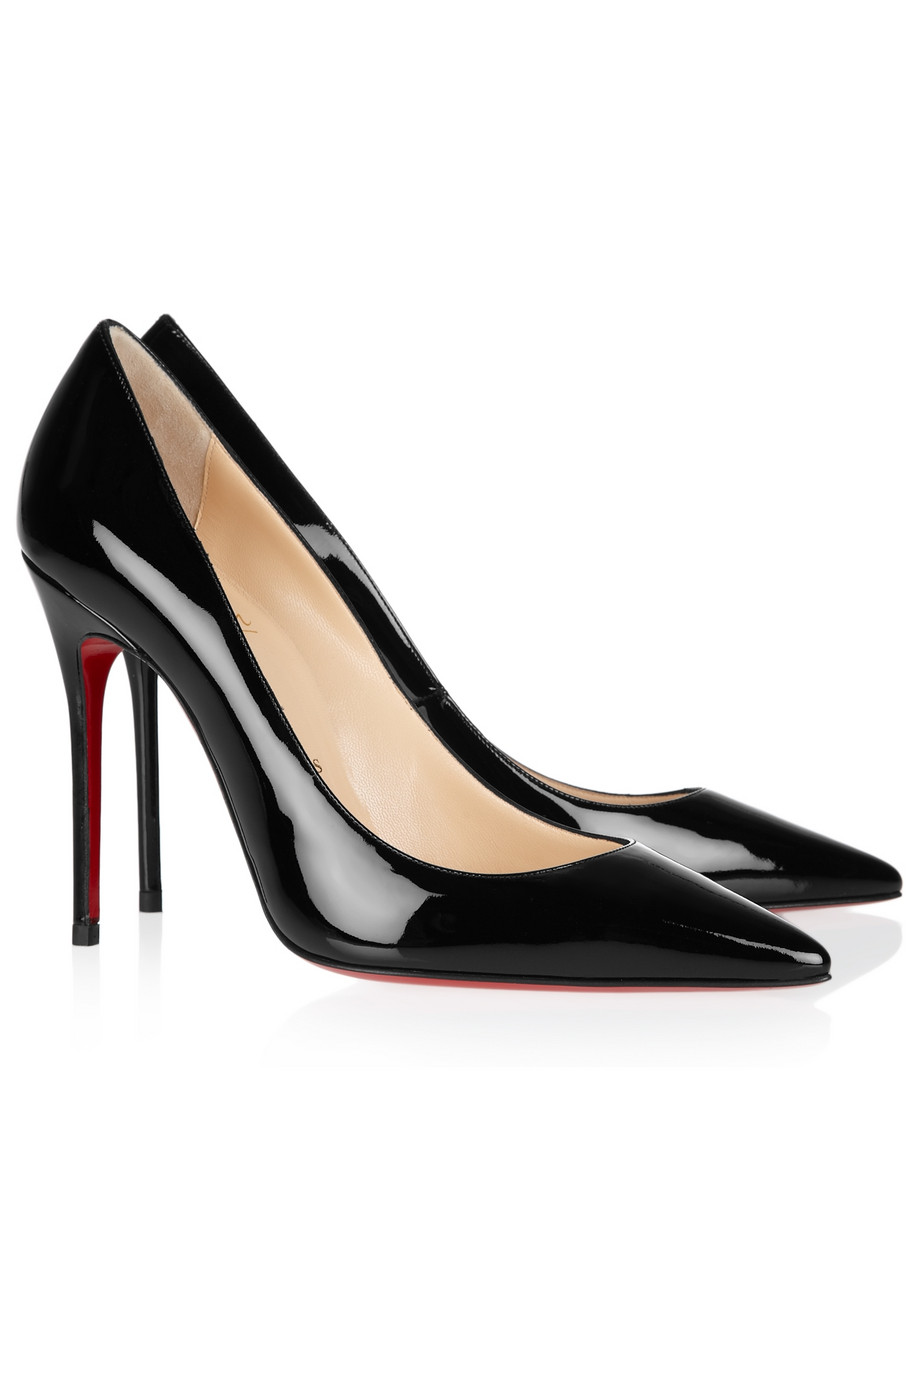 Lyst Christian Louboutin Decollete 100 Patentleather